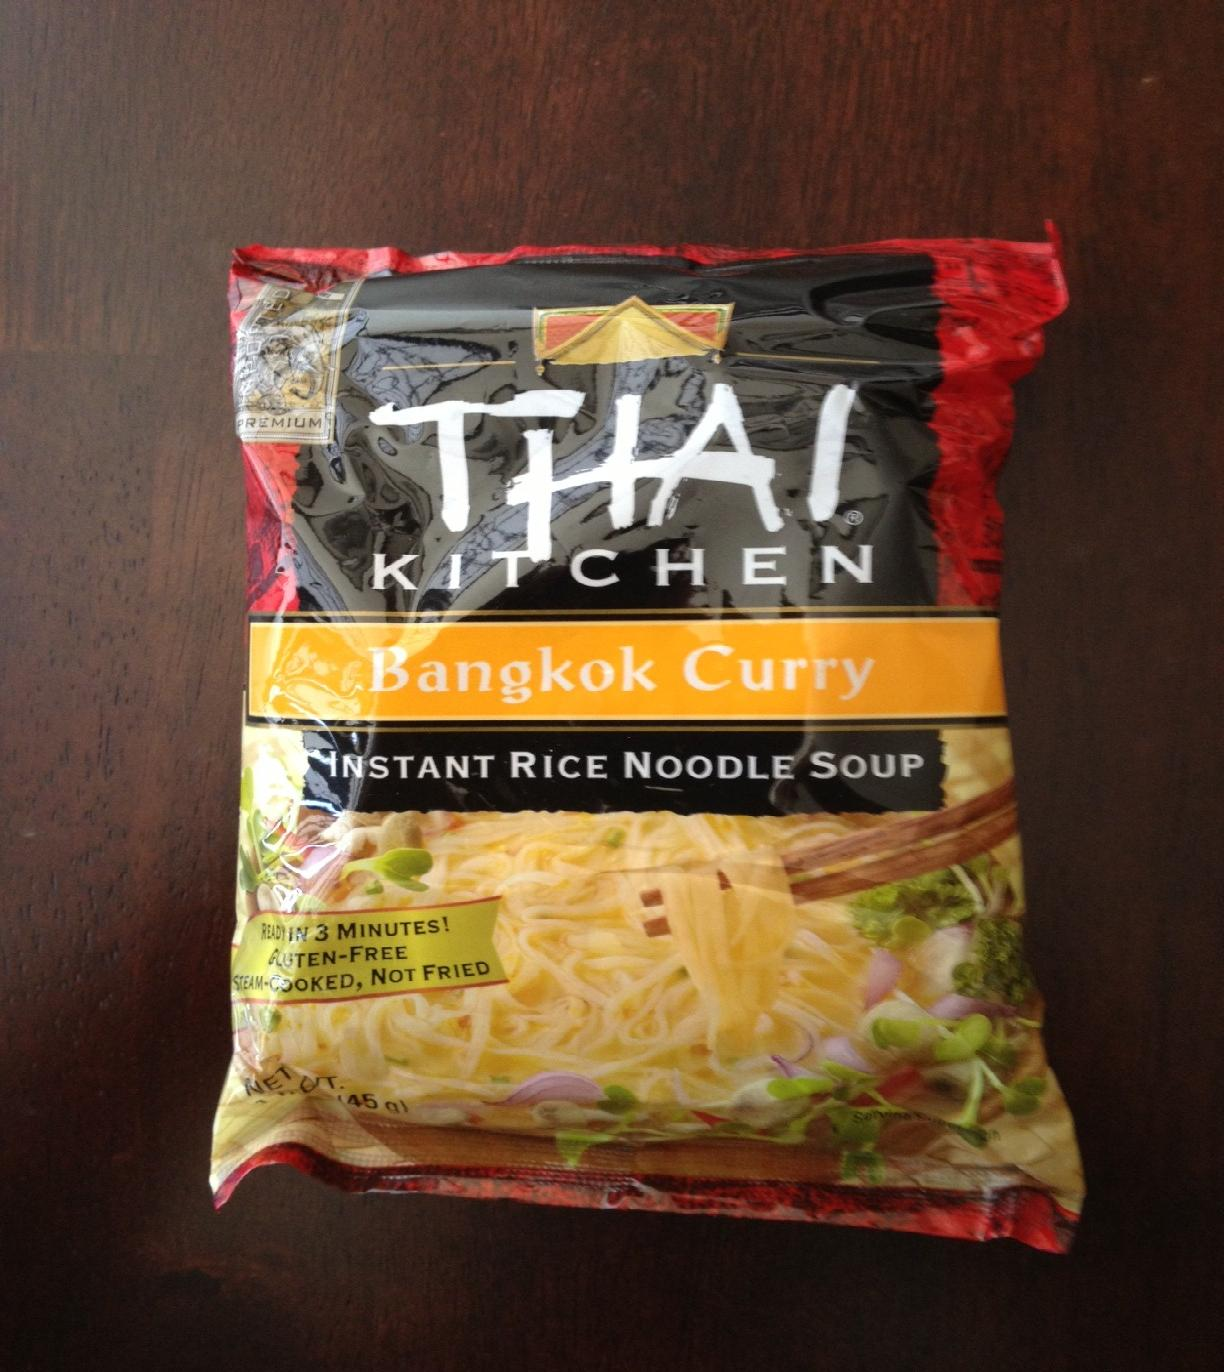 ... Dinner?: Modified Thai Kitchen Bangkok Curry Instant Rice Noodle Soup